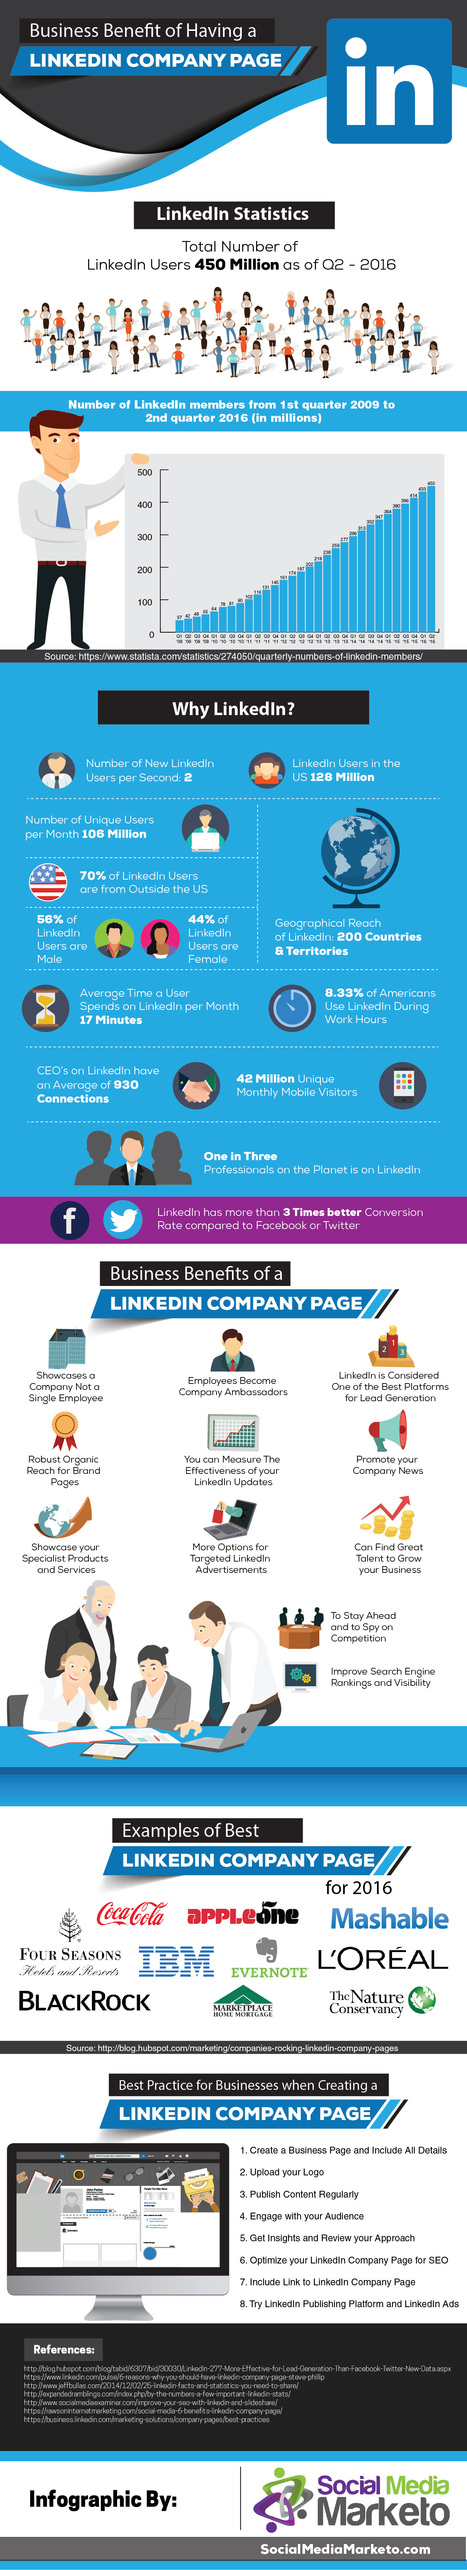 The Business Benefits of a LinkedIn Company Page | Information Technology & Social Media News | Scoop.it